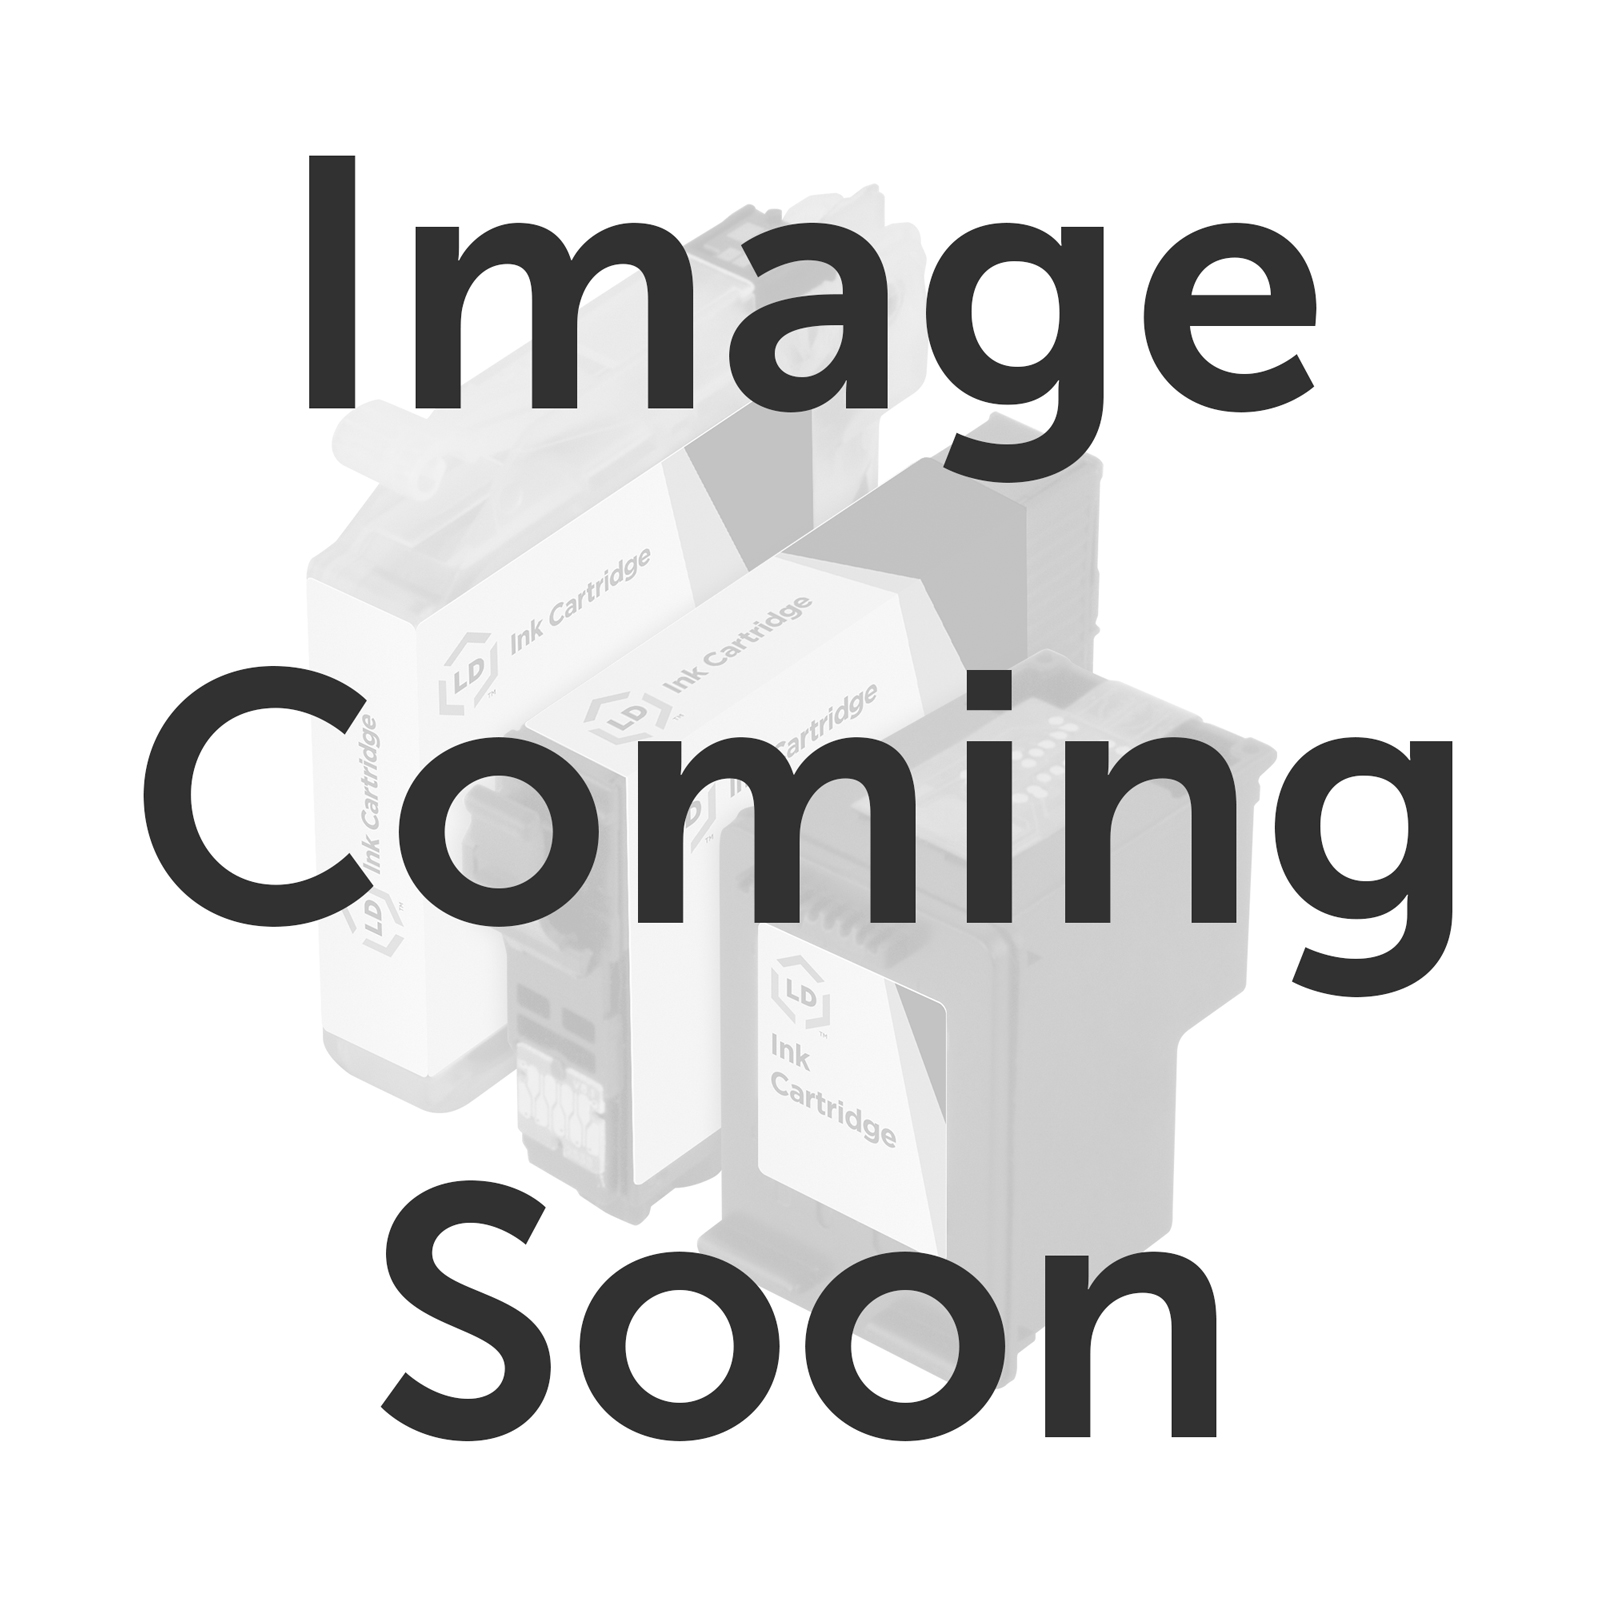 4 Compatible Extra High-Yield Replacement Toners (Bk, C, M, Y) for the Dell Laser 2130cn and 2135cn